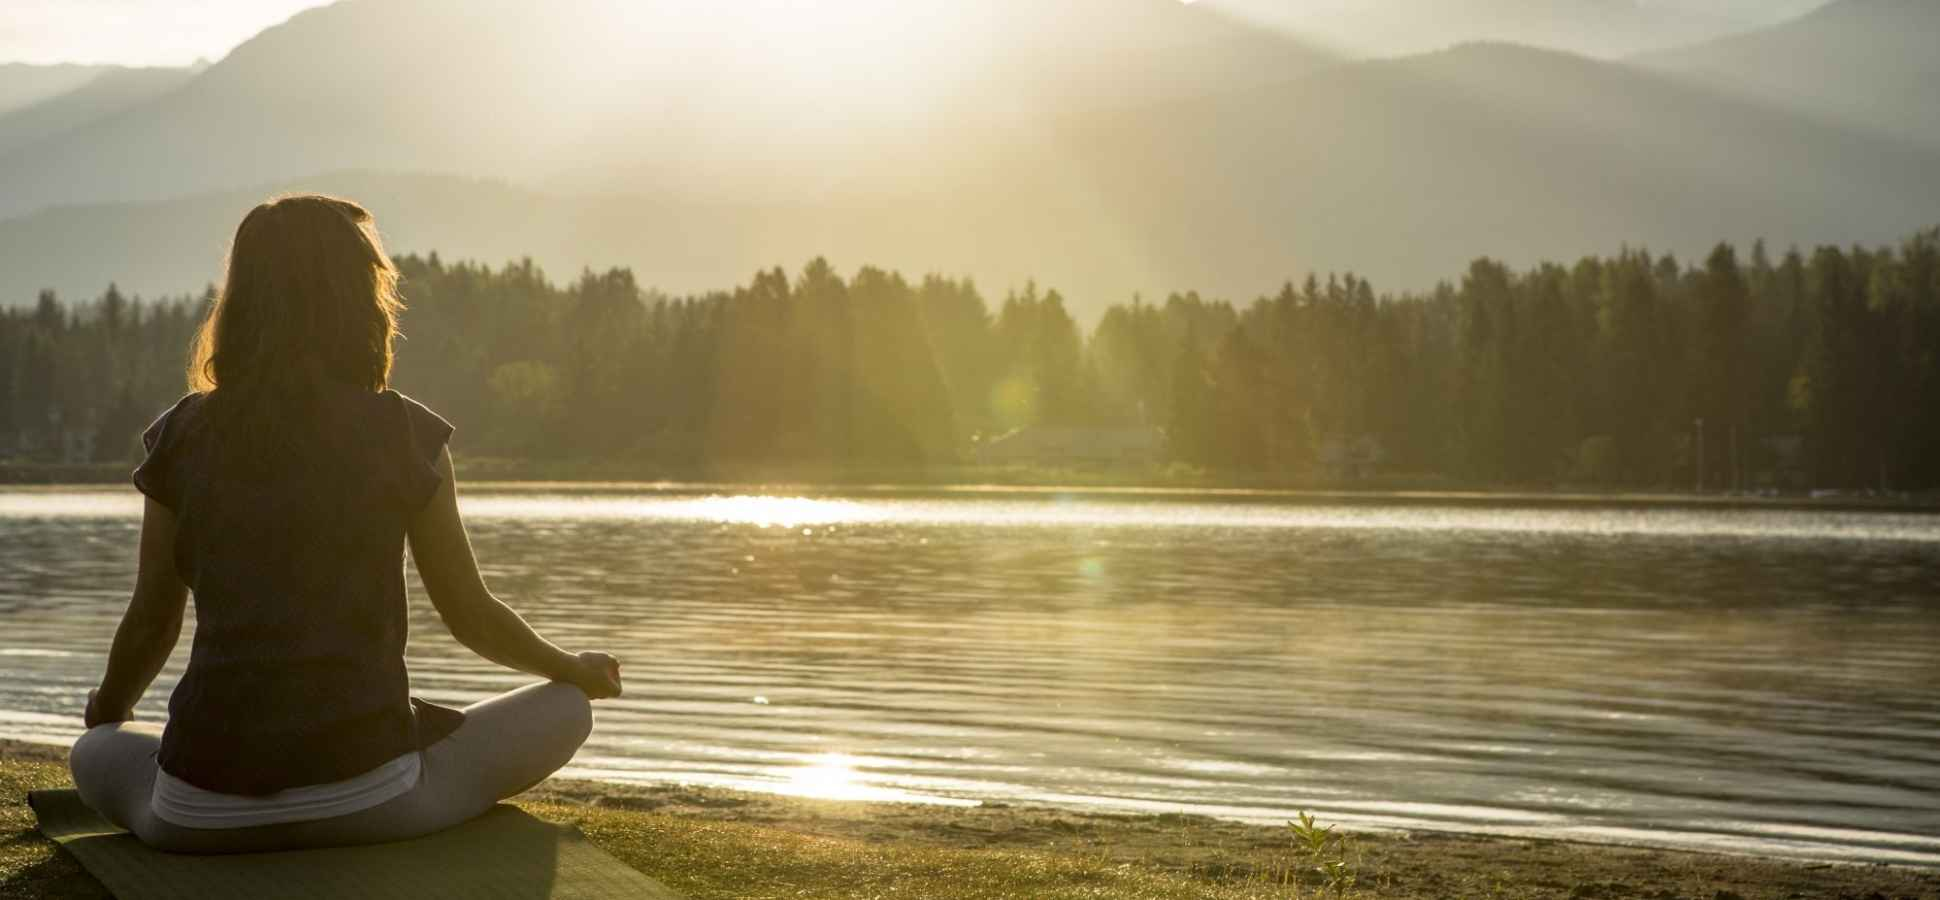 3 Easy Ways to Be More Mindful Every Day